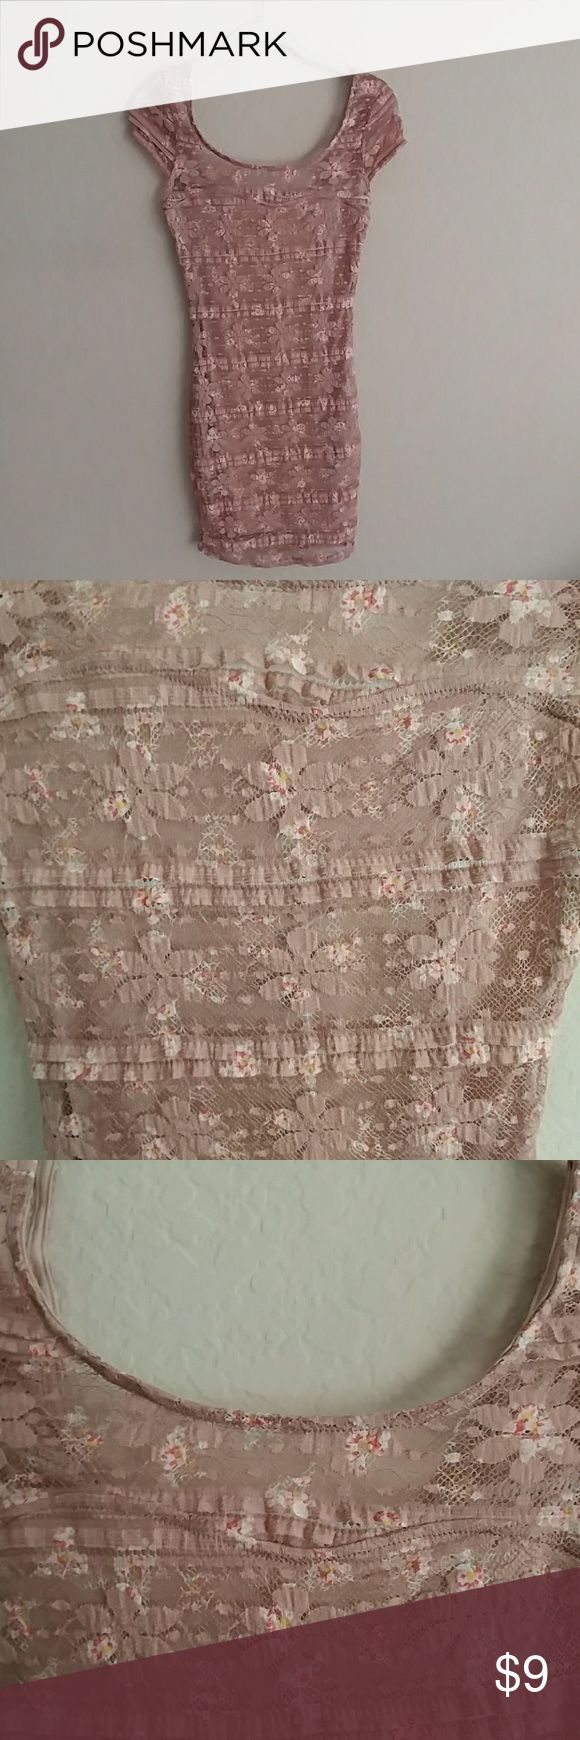 Cute fitted pink dress Cap sleeves, lace, pinky mauve color with flowers embroidered. Size xs, never been worn, excellent condition Charlotte Russe Dresses Mini